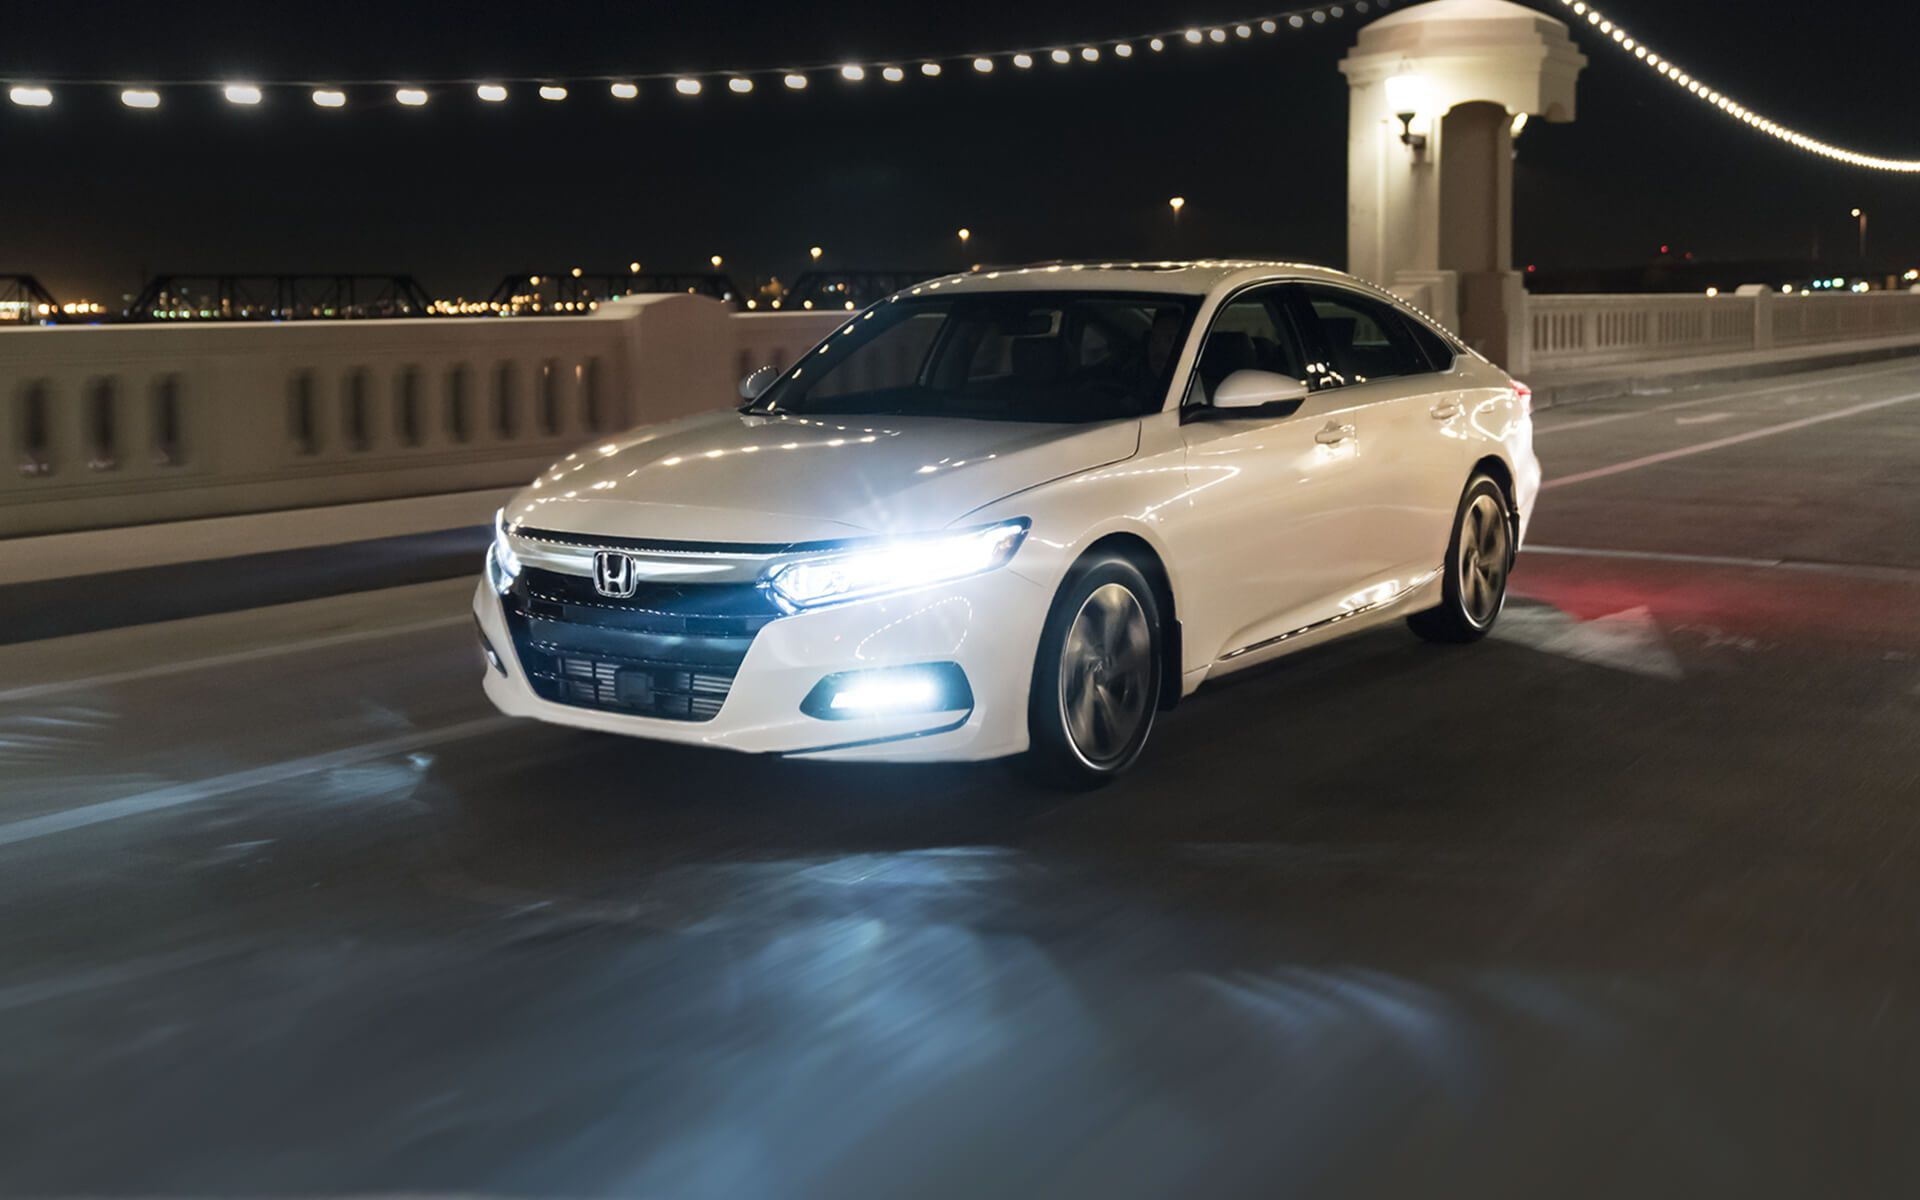 2018 Honda Accord >> 2018 white Honda Accord Sport 2.0T at night - HD Image #13 on WallpapersQQ